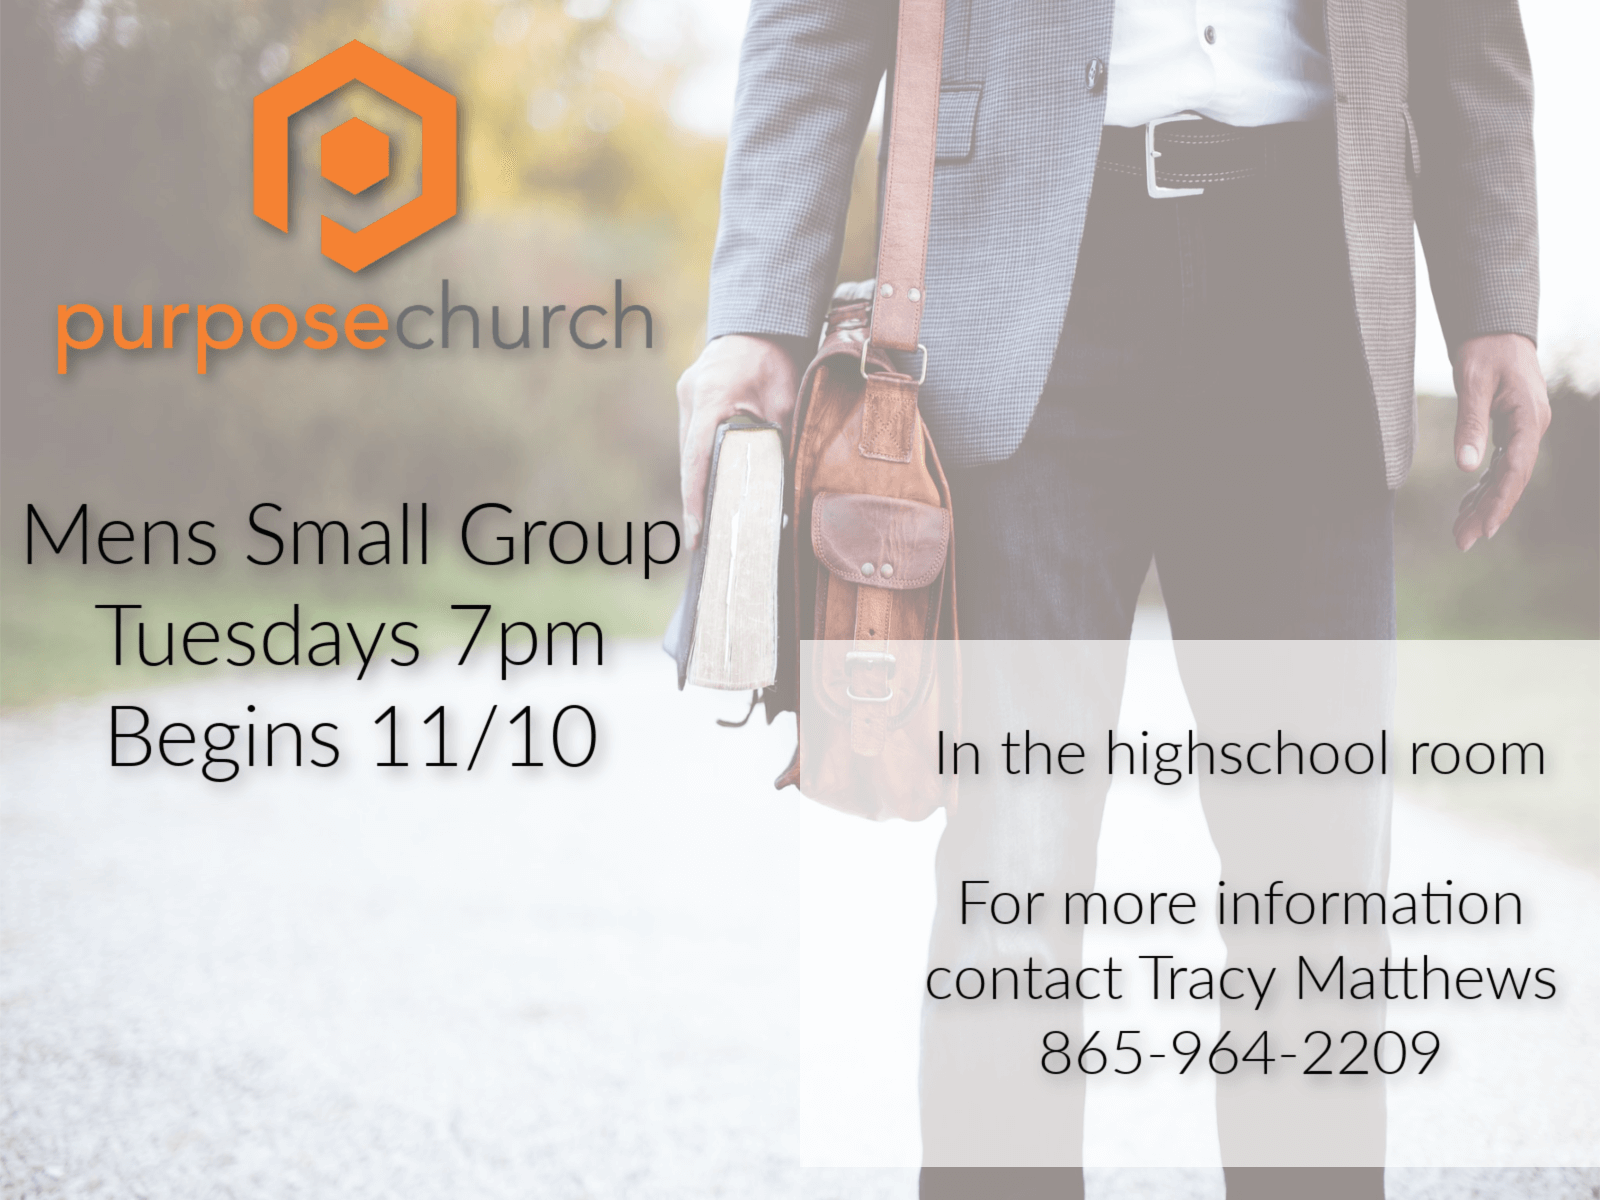 Men's Small Group Flyer